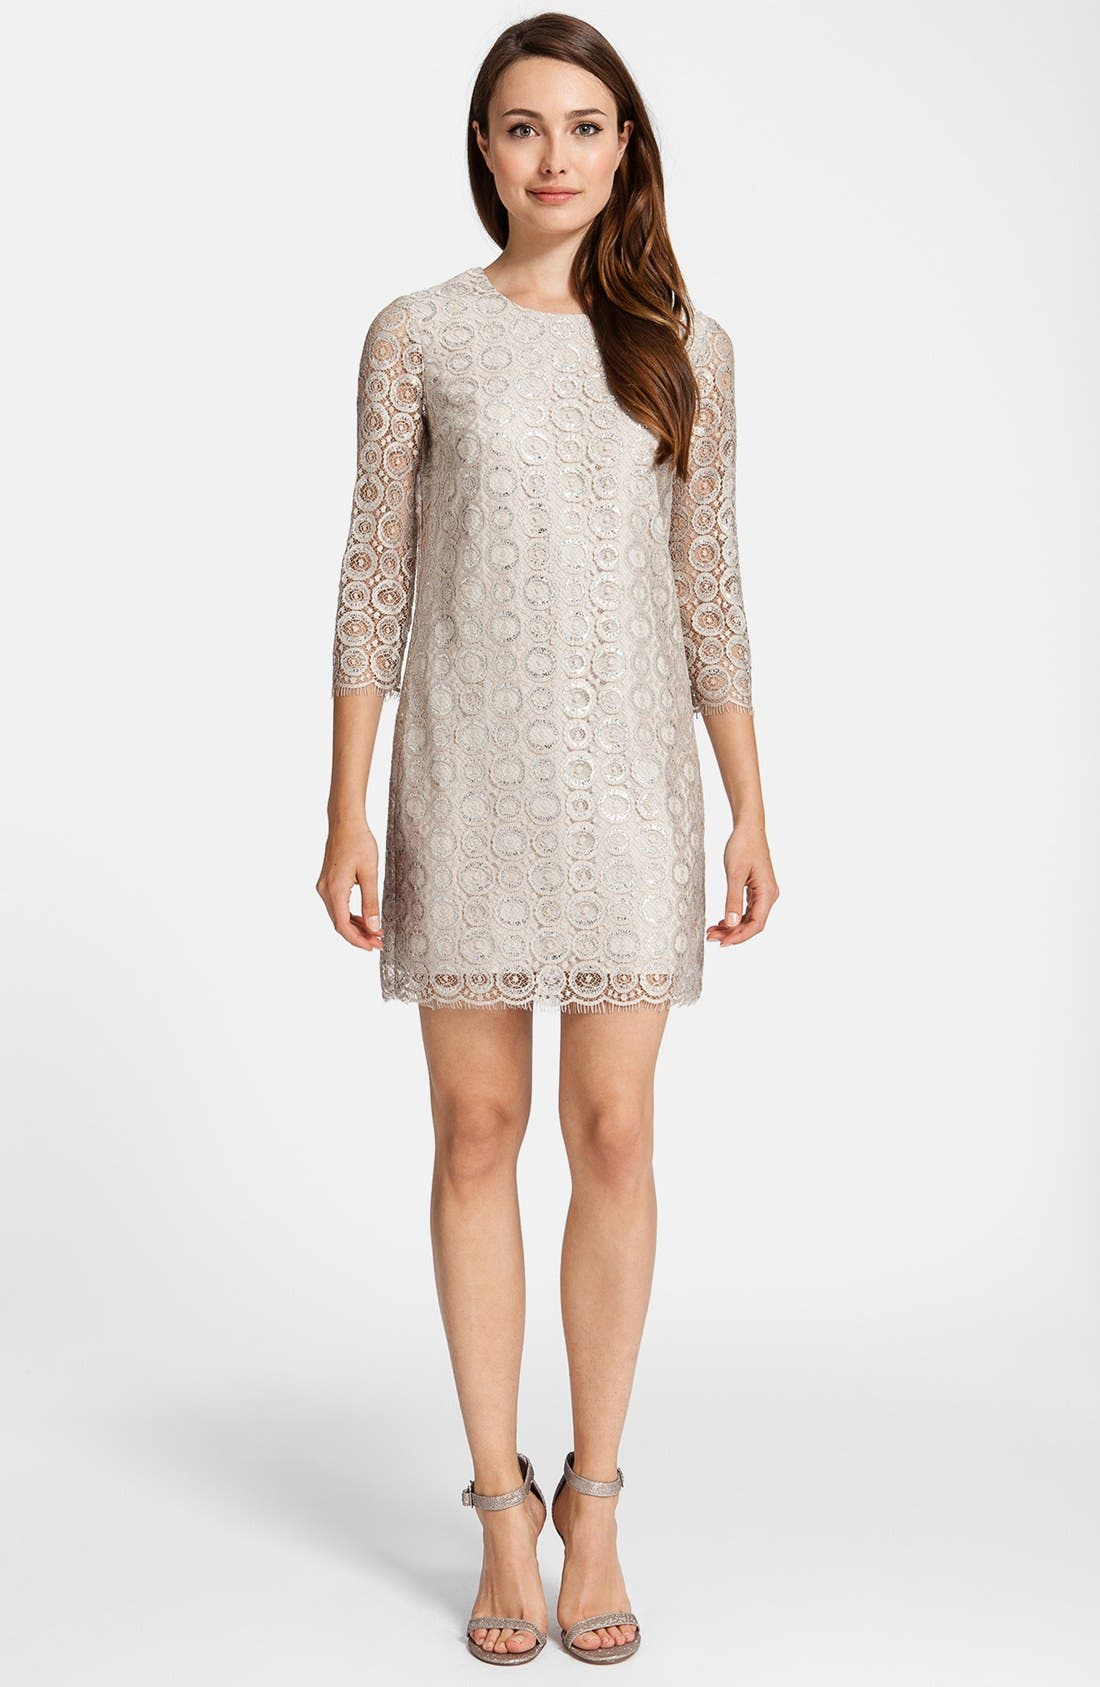 Alternate Image 1 Selected - Cynthia Steffe 'Vida' Lace Shift Dress